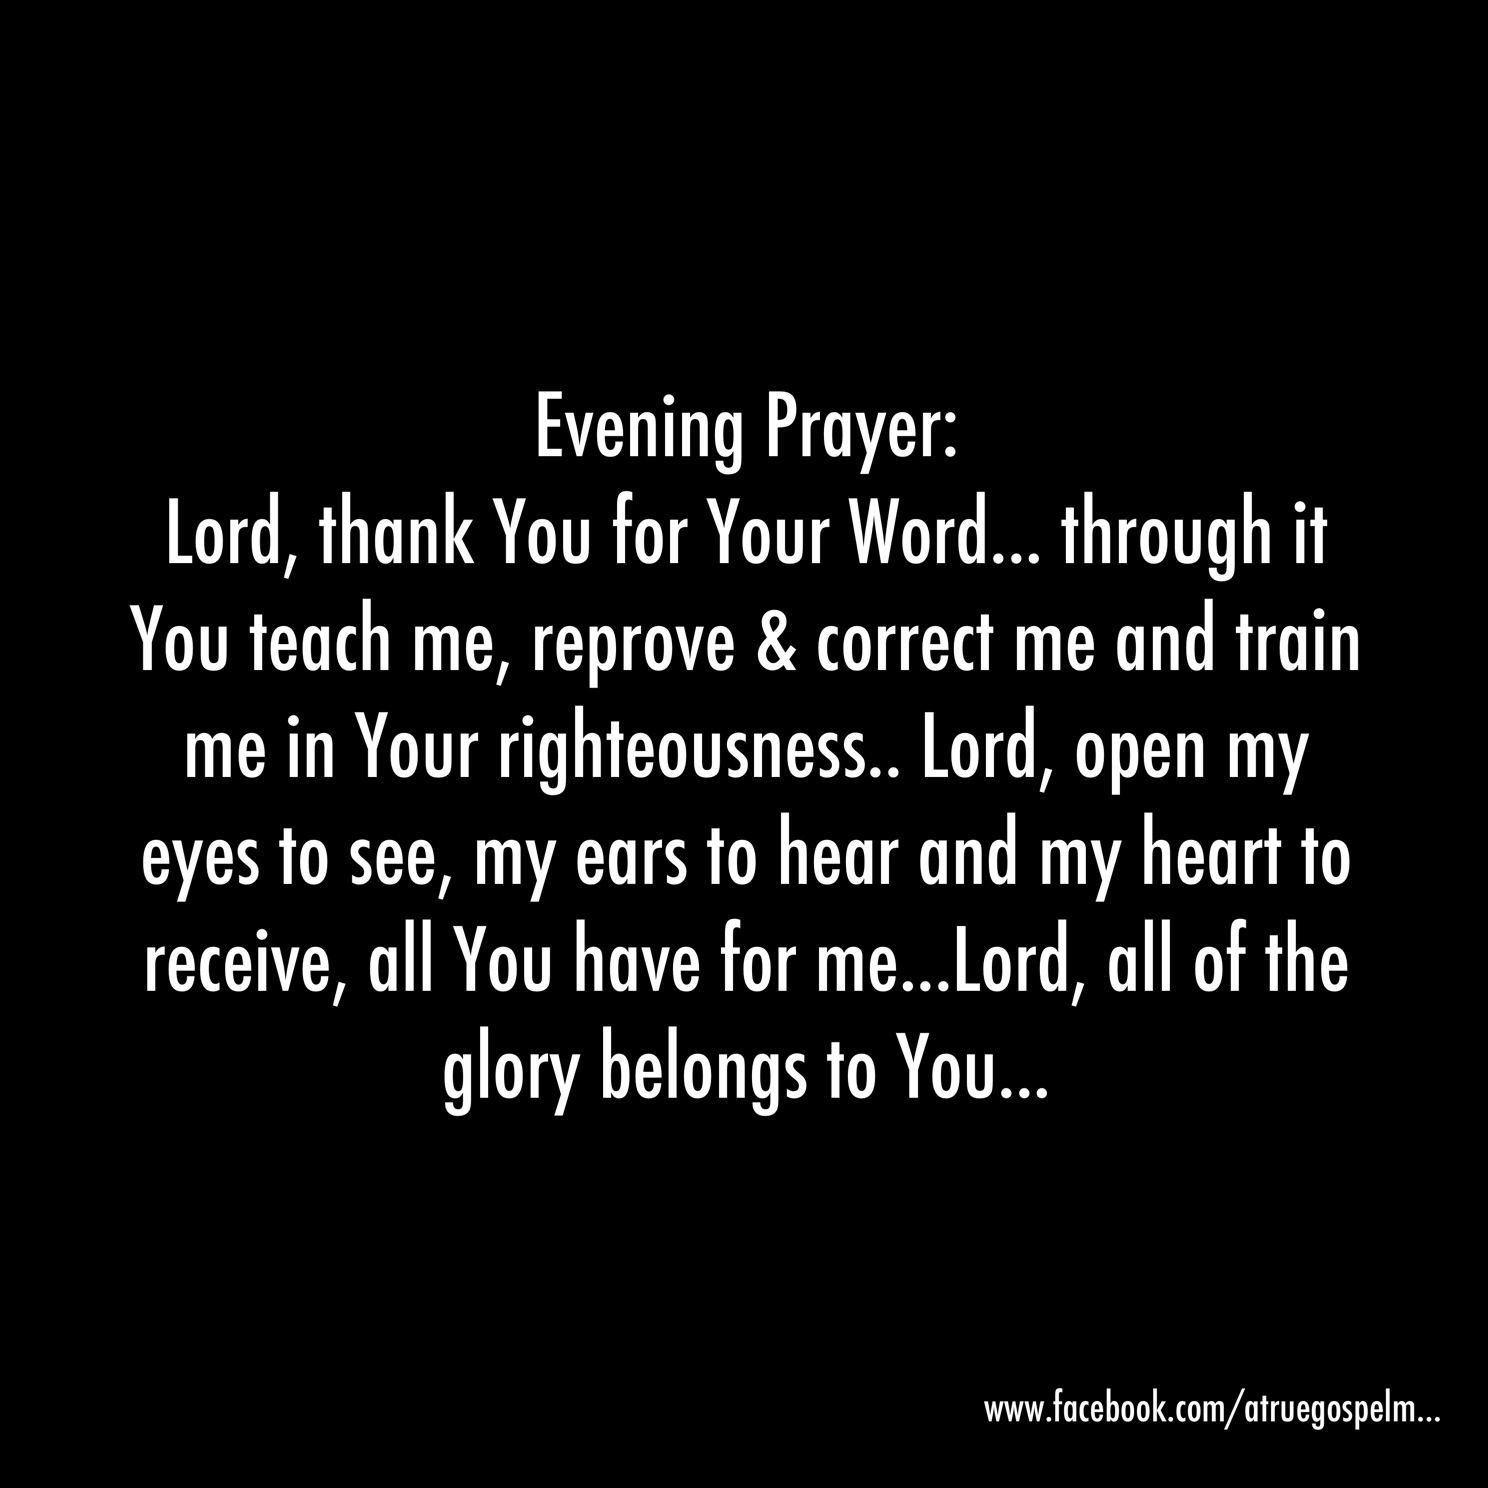 Evening Prayer Lord Open My Eyes To See My Ears To Hear And My Heart To Receive All You Have For Me Eveningprayer S Evening Prayer Prayers Daily Prayer